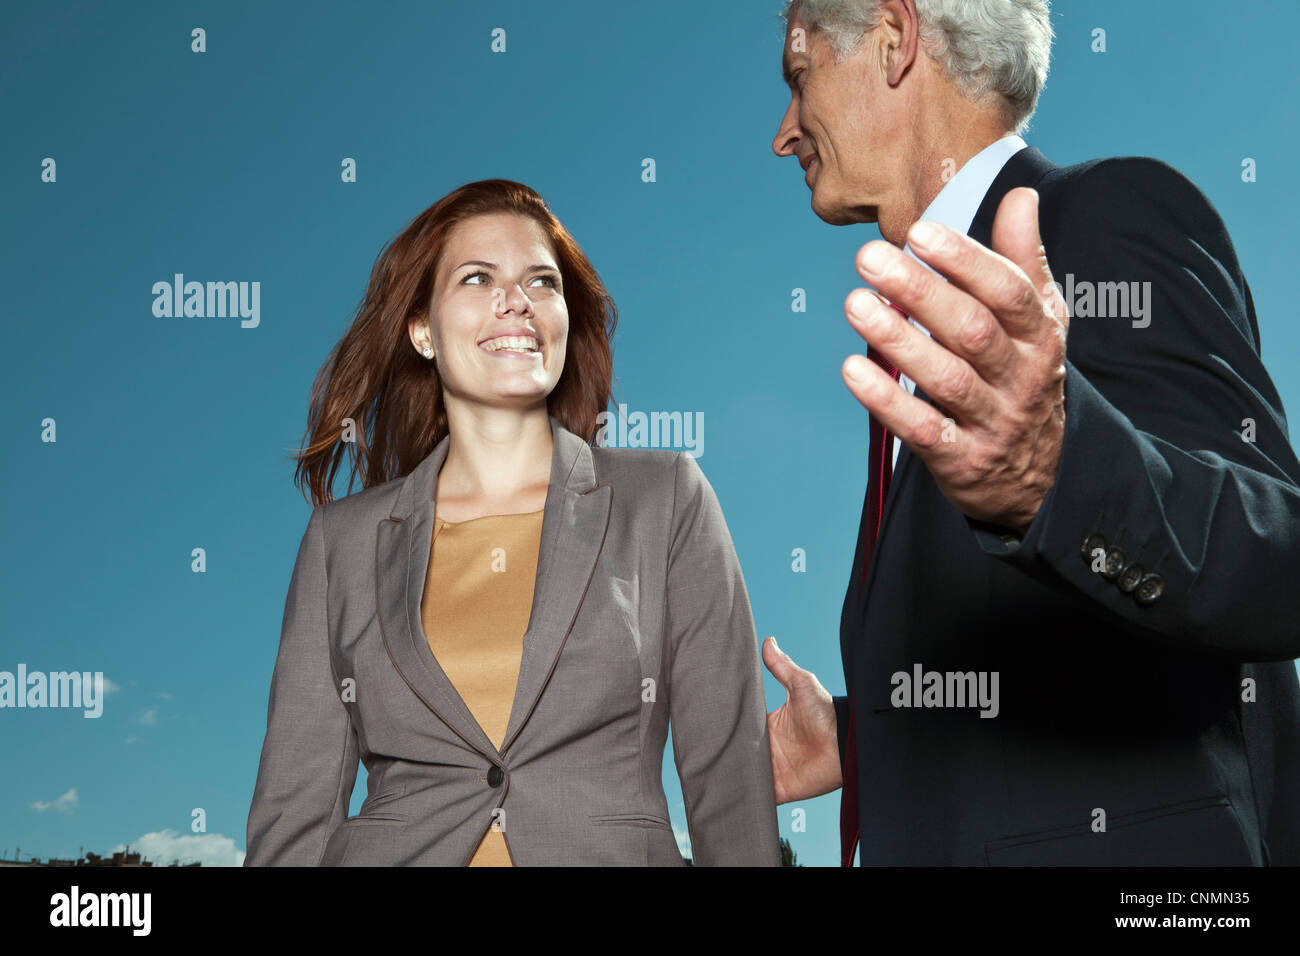 Business people talking against blue sky - Stock Image